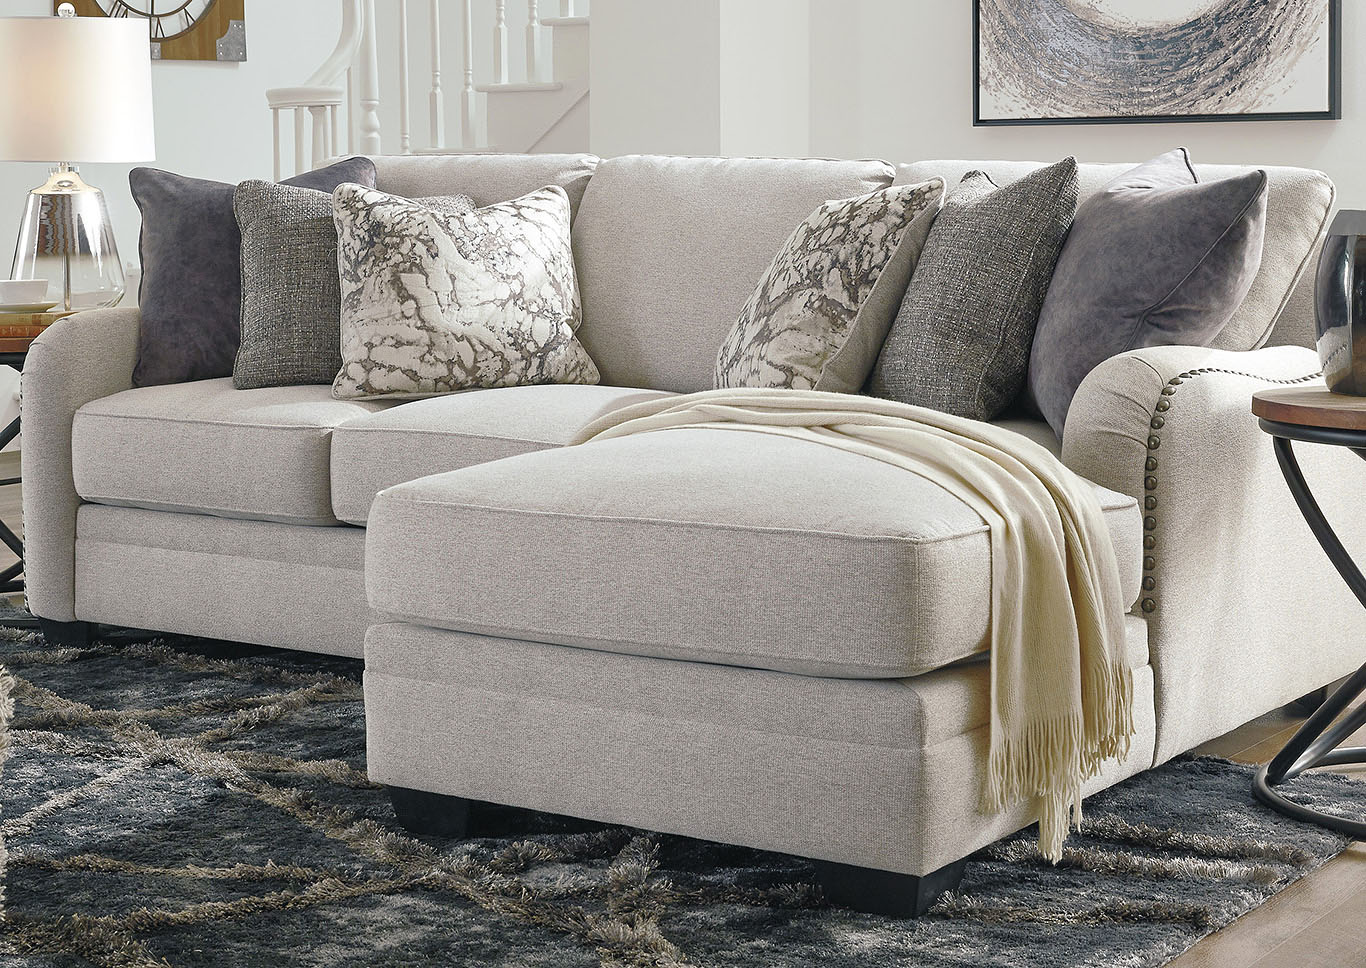 Dellara Chalk Sectional w/RAF Chaise,Benchcraft